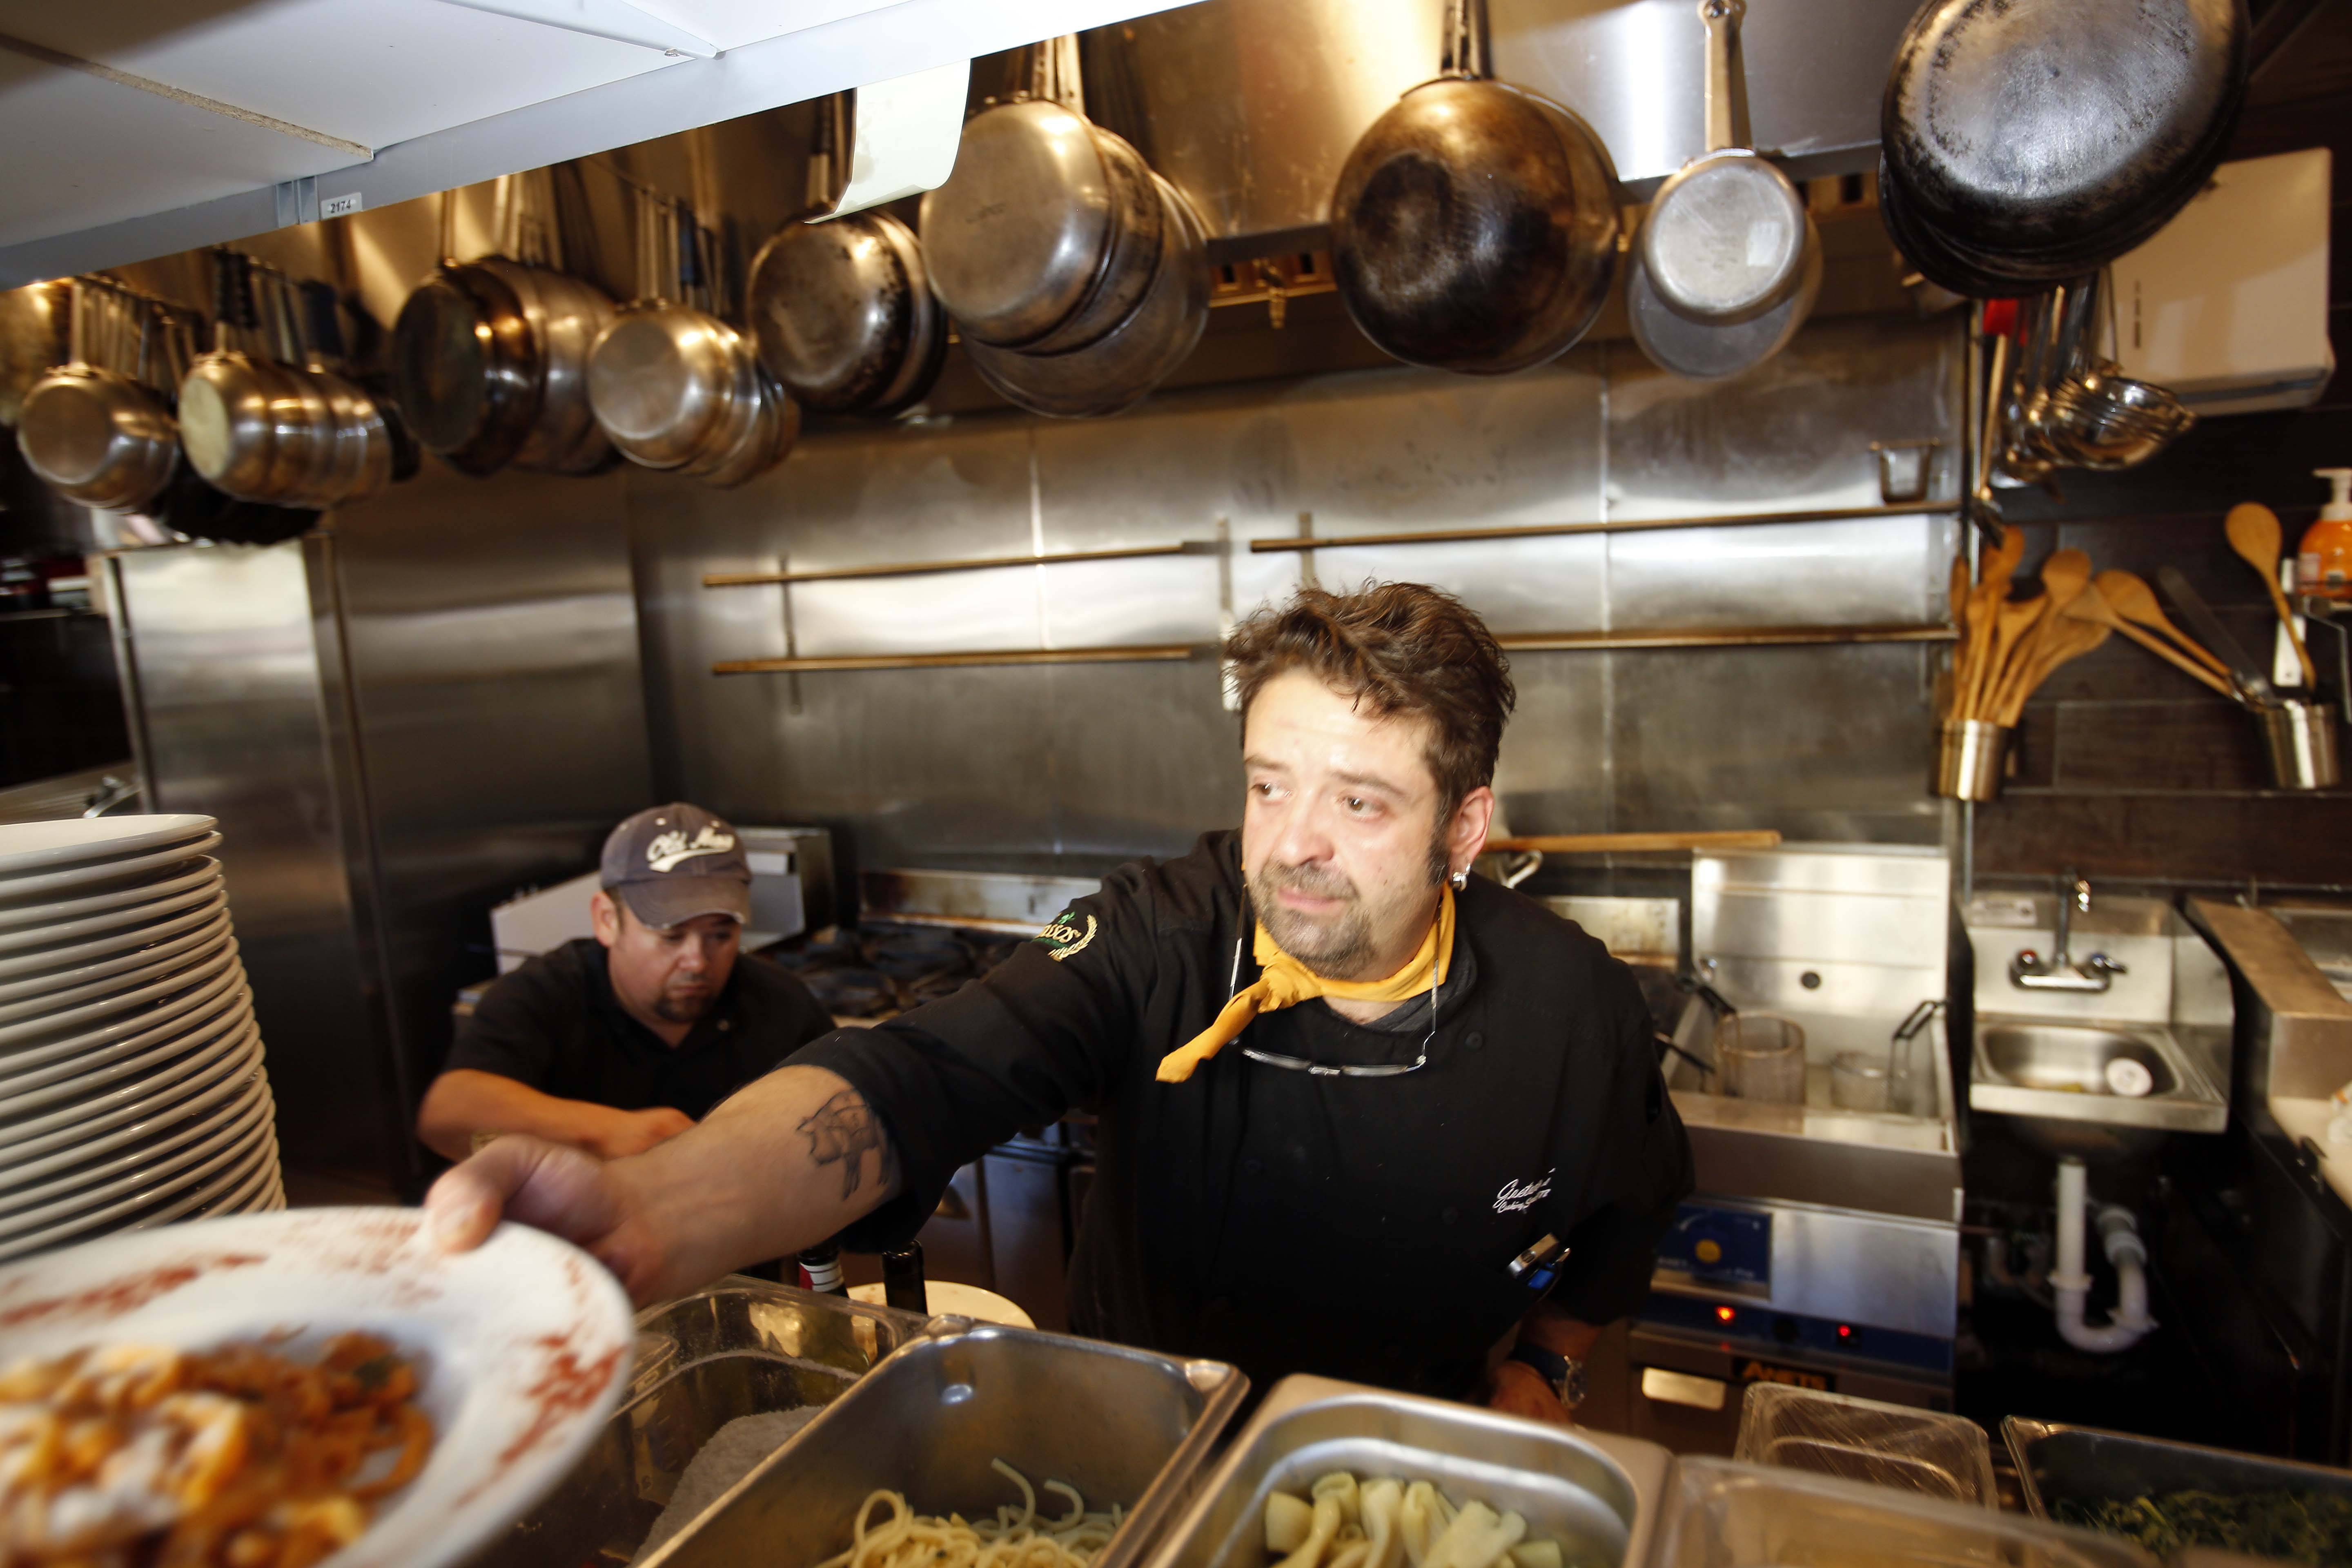 Chef Gaetano Di Benedetto opened his eponymous eatery in downtown Batavia this past summer.